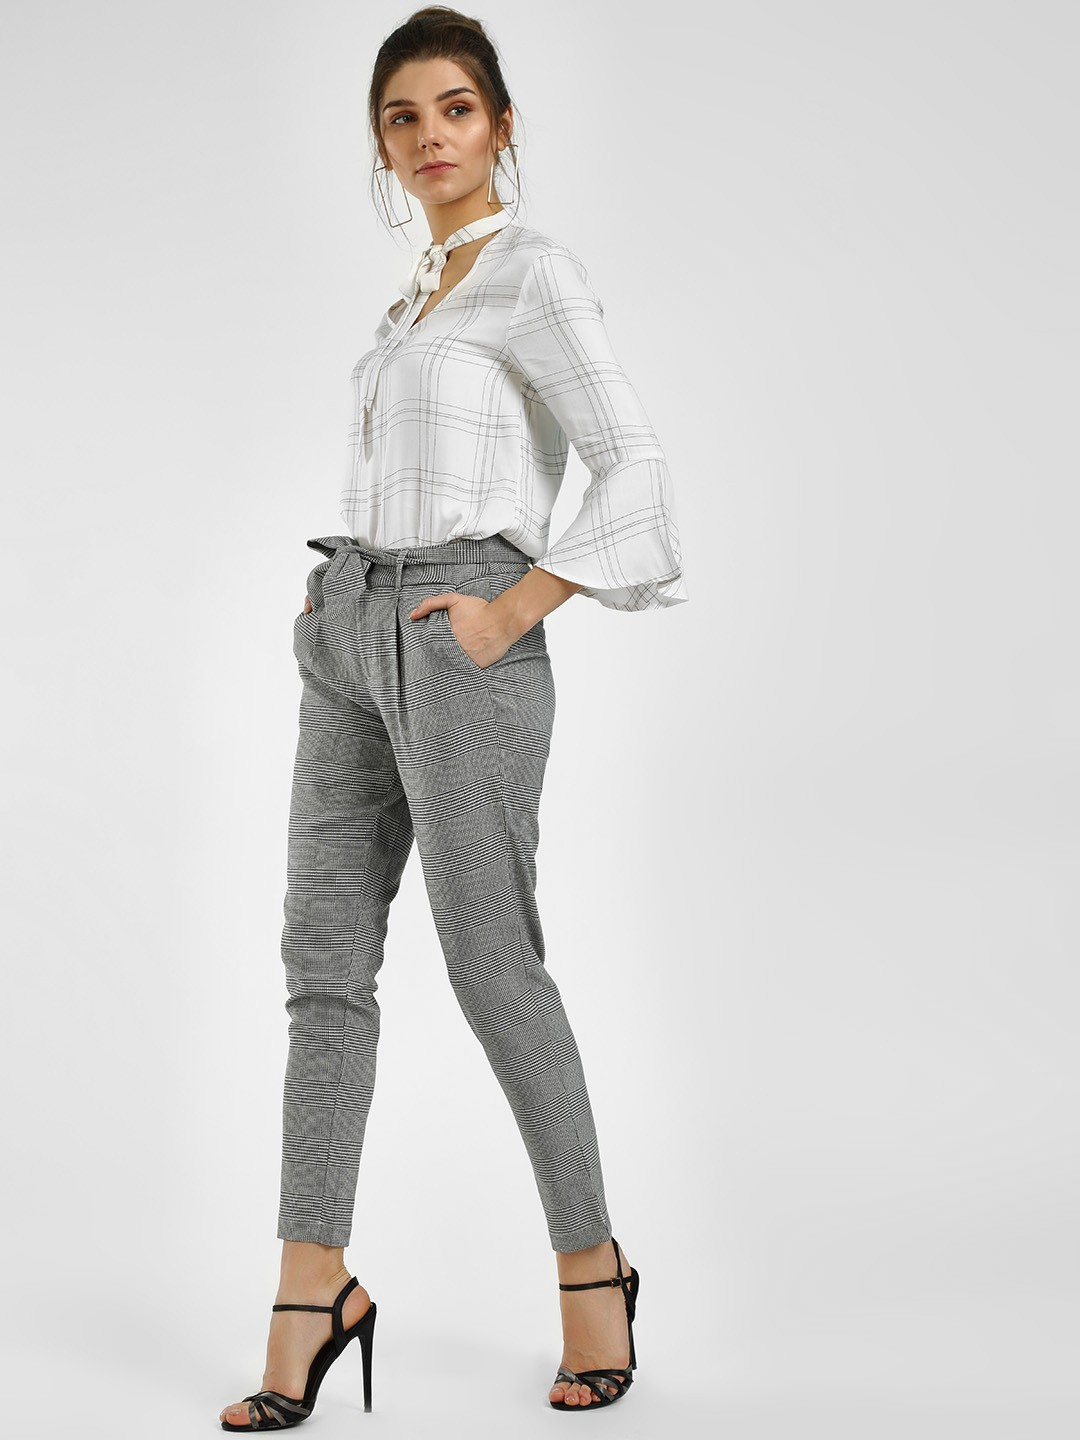 HEY Grey Multi-Check Bottom Tie-Up Trouser 1